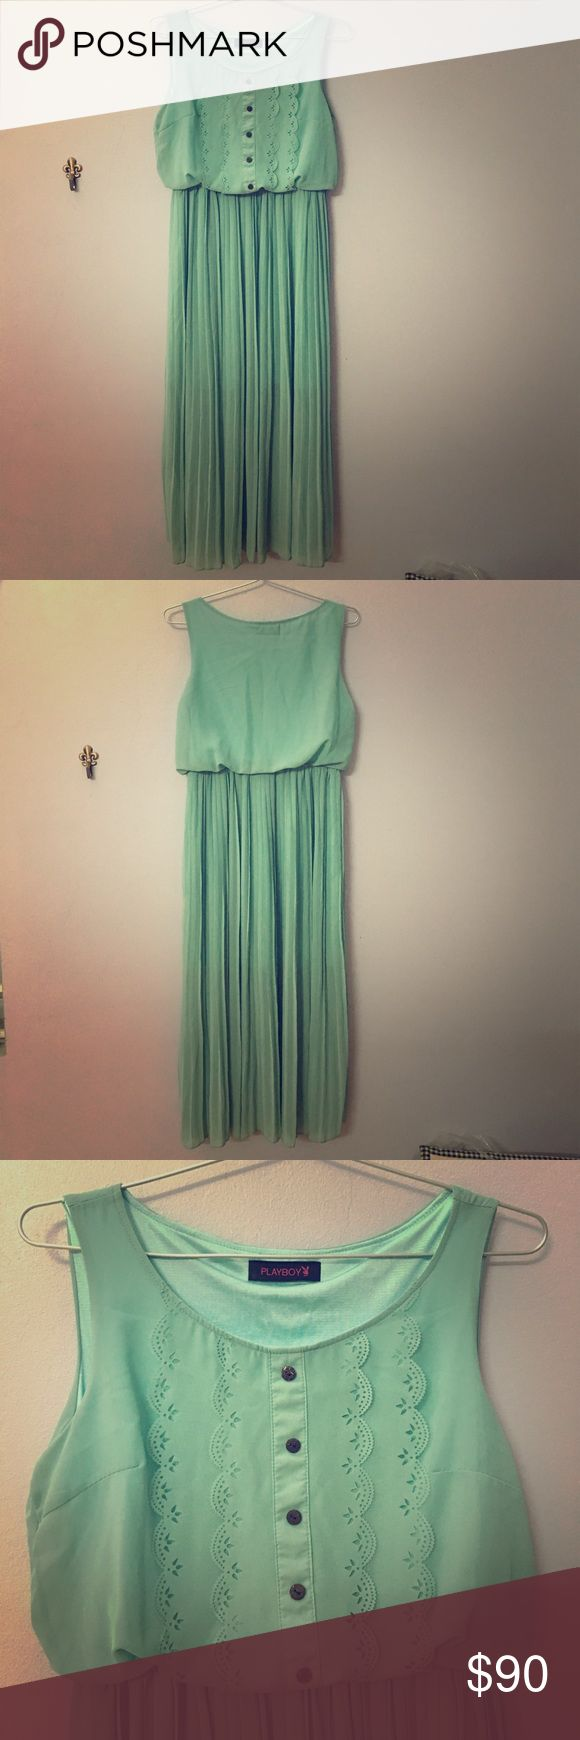 PLAYBOY mint lovely maxi dress 👗 Playboy mint maxi. Bought from showroom so it's authentic Playboy! Very lovely 👗Currently I'm not in the US, so I can't ship until Aug! SO IF YOU ARE INTERESTED, PLS DON'T BUY UNTIL THEN!! Sorry for that 😅 Playboy Dresses Maxi